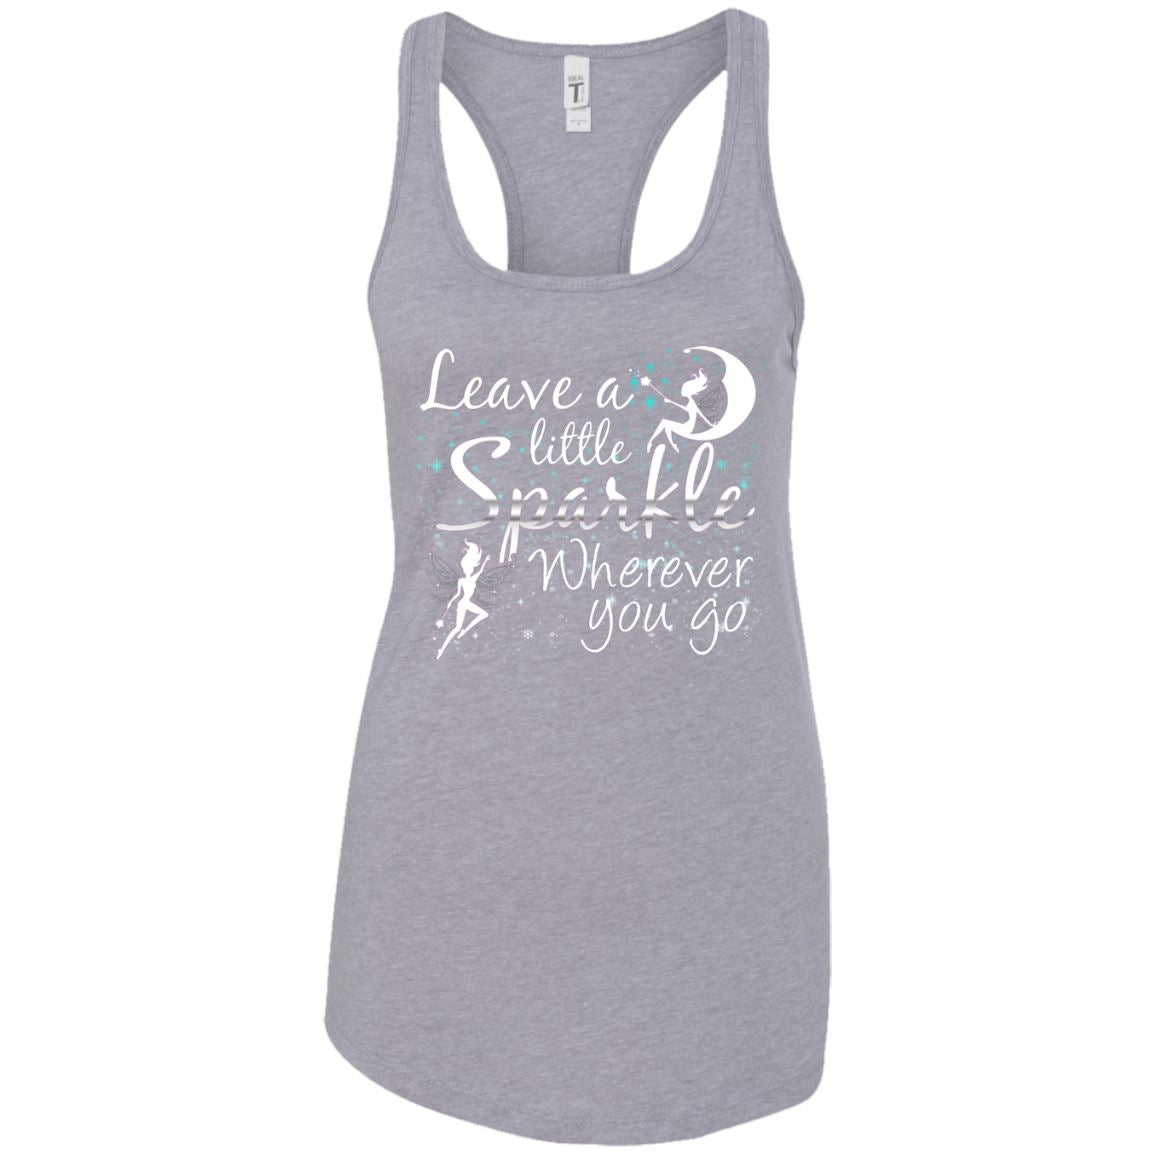 Leave A Little Sparkle Women's Racerback Tank T-Shirts Heather Grey X-Small